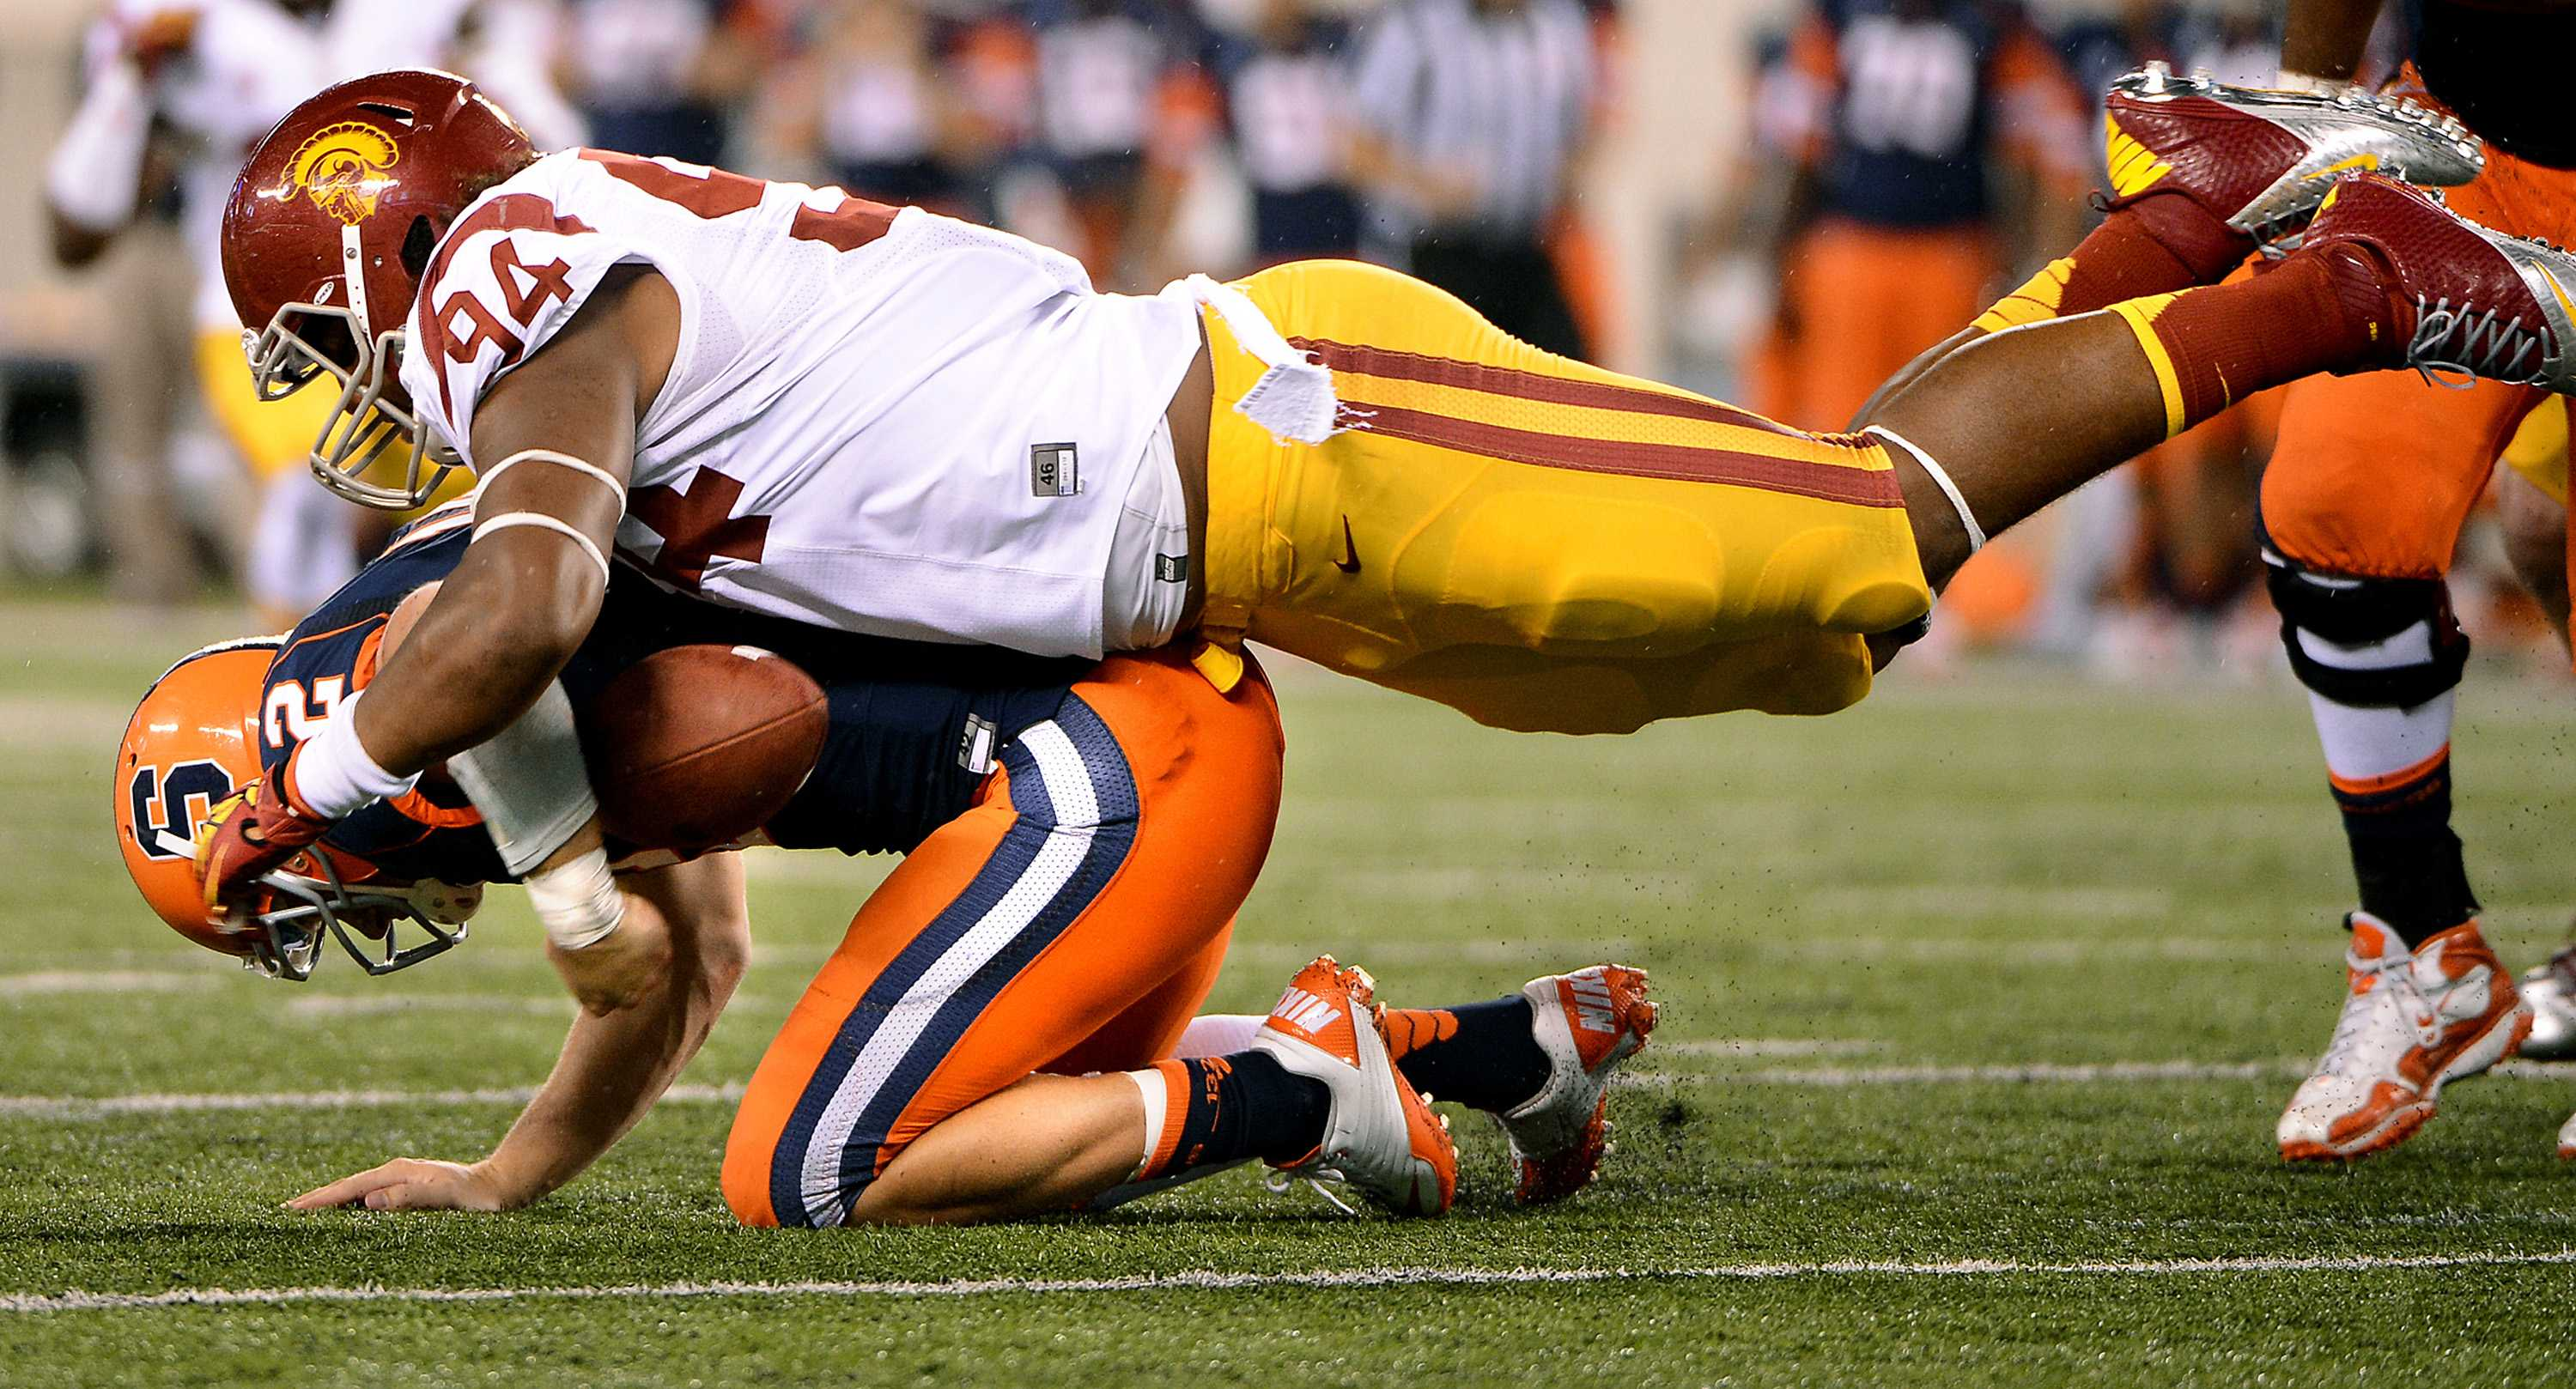 USC's Leonard Williams sacks Syracuse quarterback Ryan Nassib in the fourth quarter in East Rutherford, New Jersey, Saturday, September 8, 2012. USC defeated Syracuse, 42-29. (Wally Skalij/Los Angeles Times/MCT)